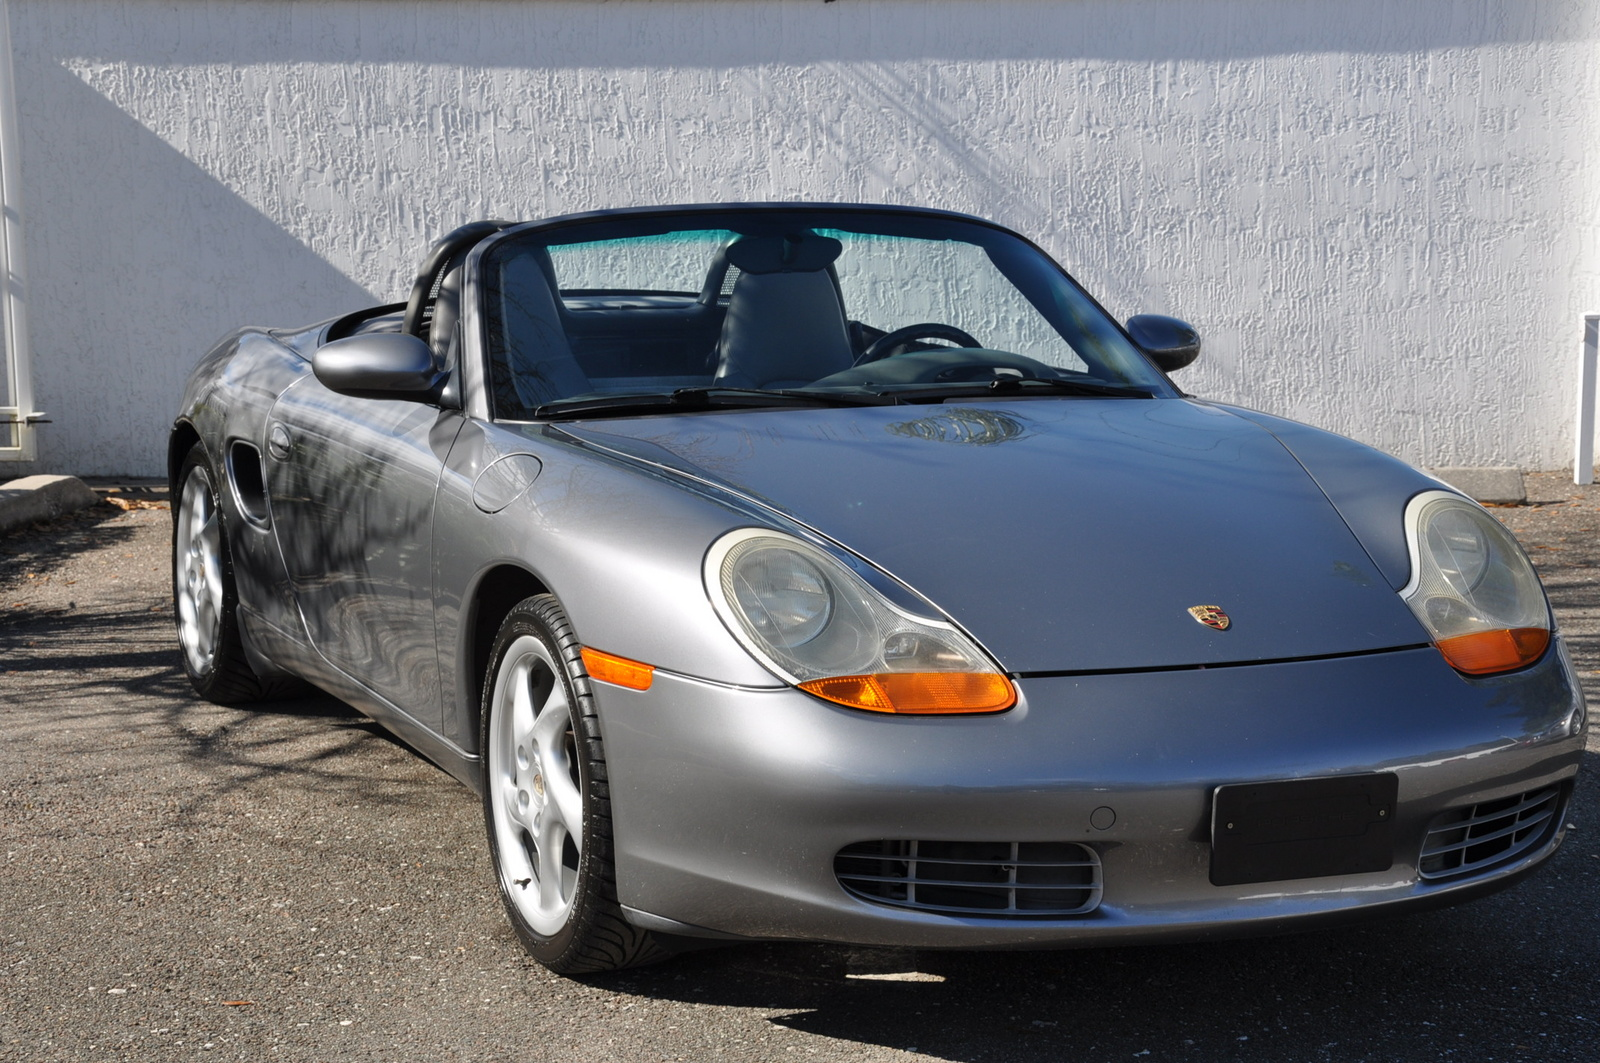 2001 porsche boxster s specs 2001 free engine image for. Black Bedroom Furniture Sets. Home Design Ideas